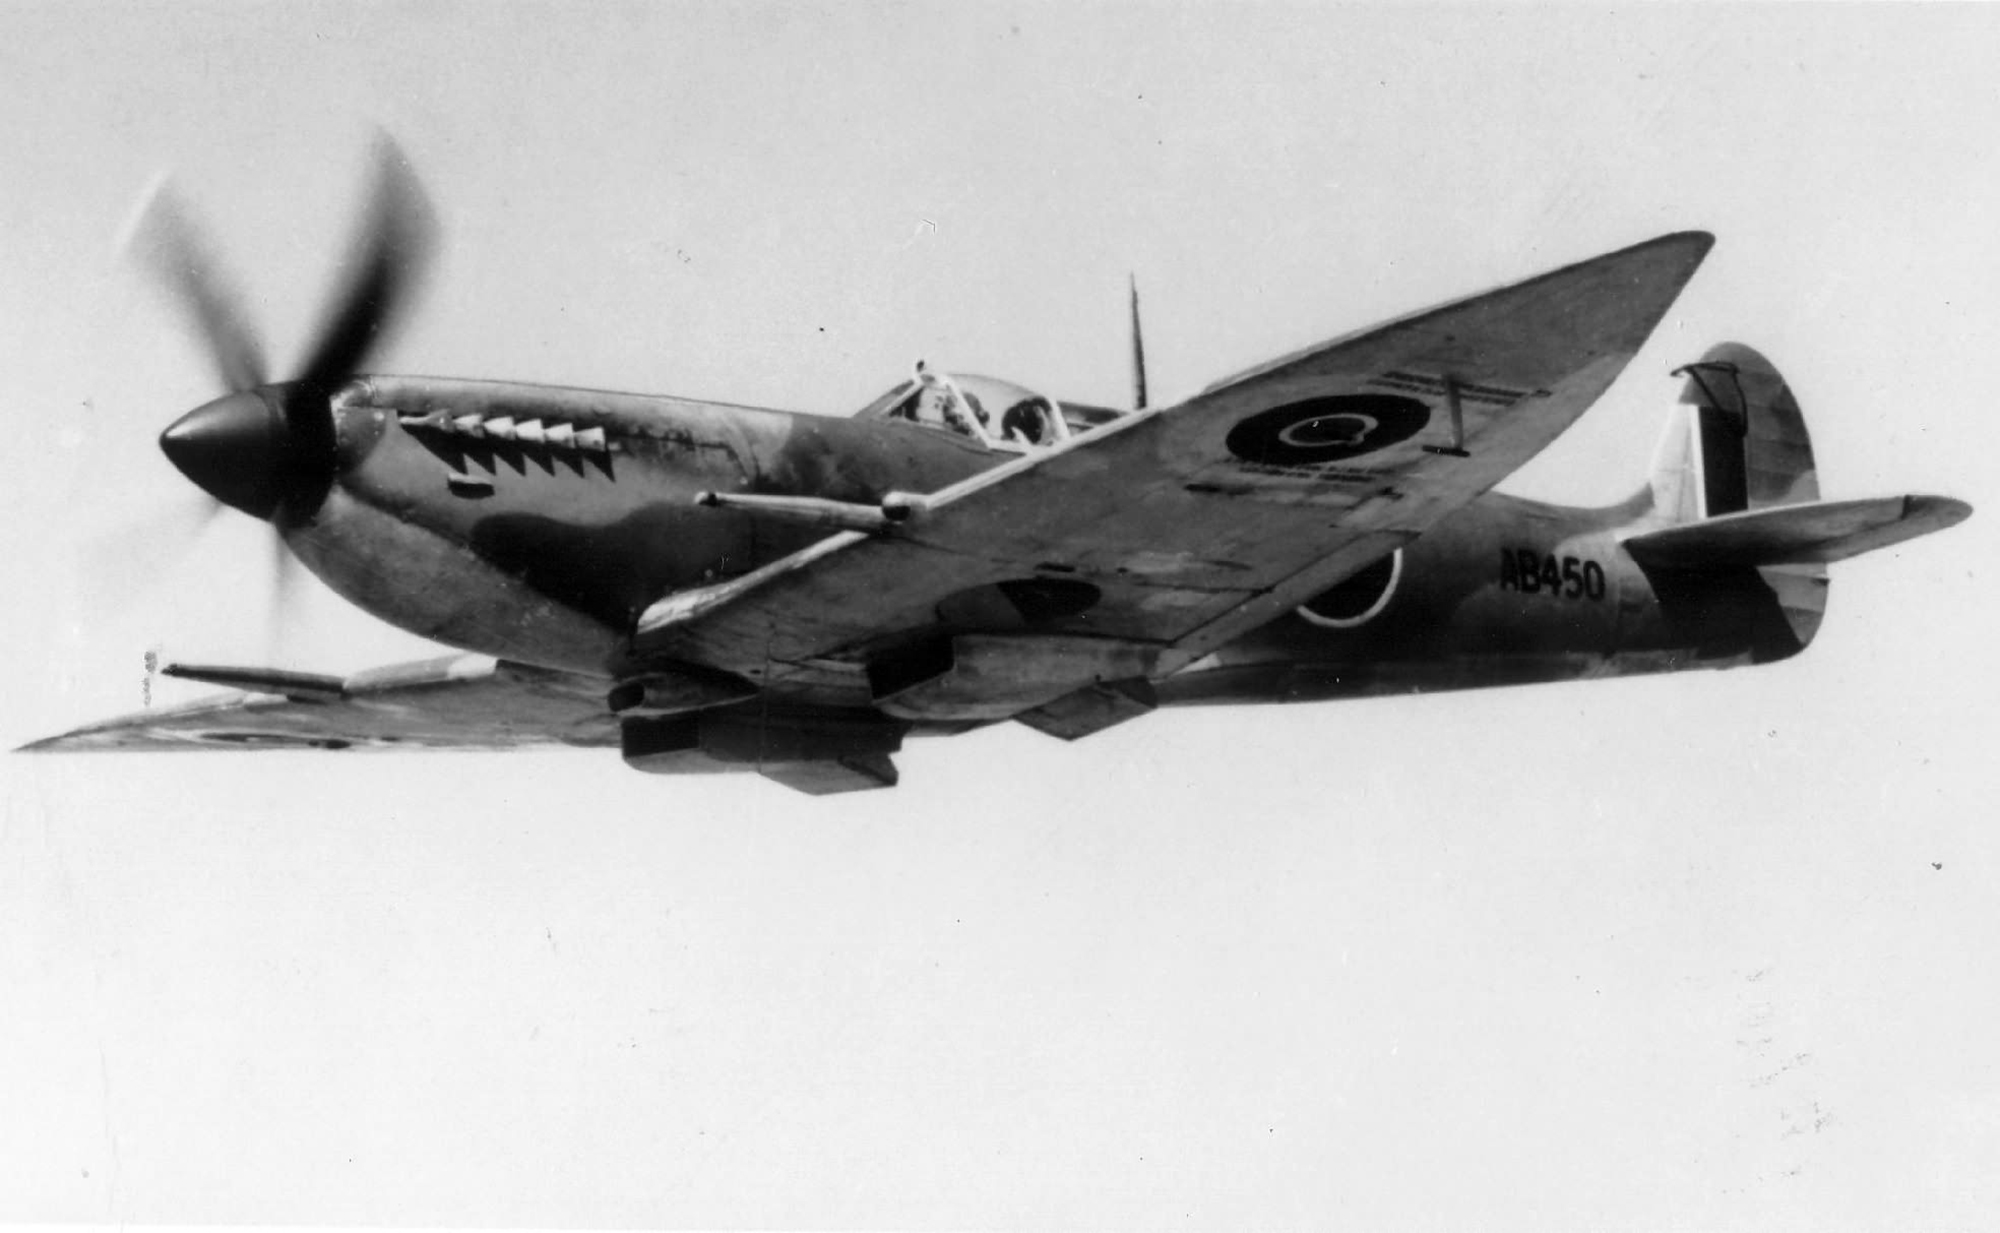 Spitfire 7 Proyotype AB450 1942 02